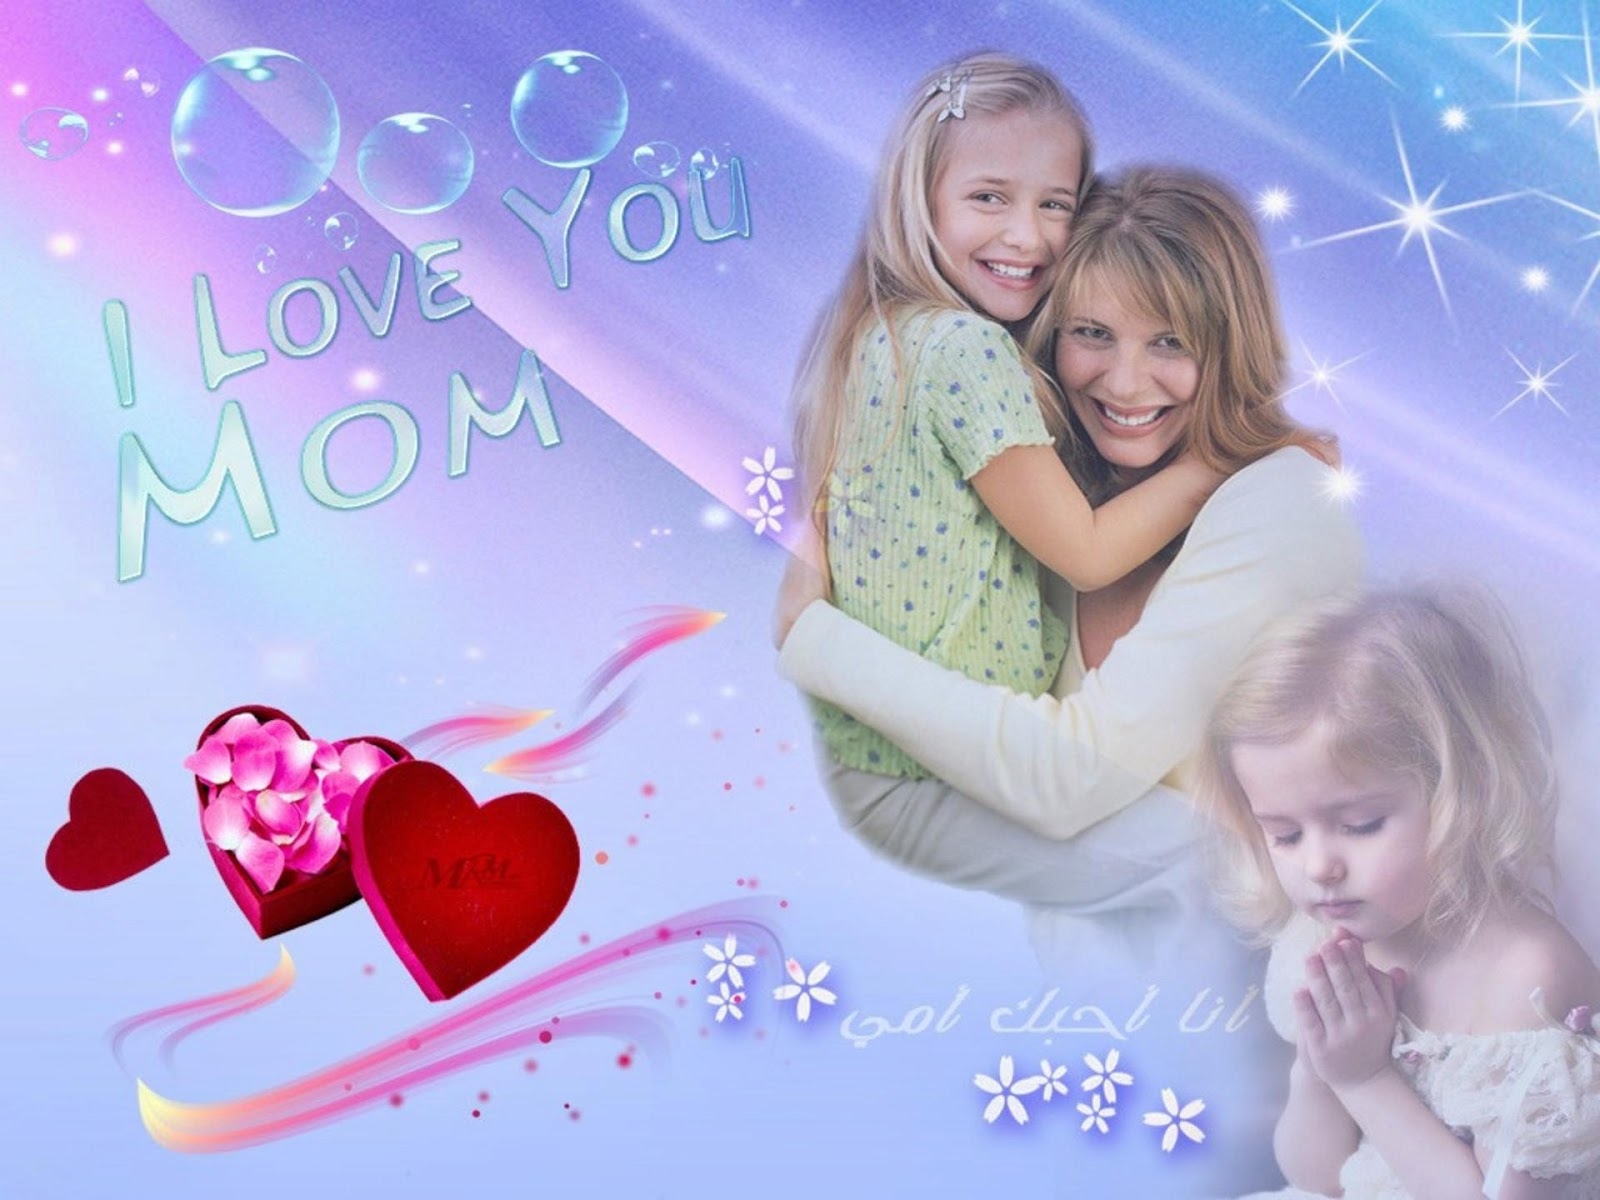 Wallpaper I Love You Mom : Wallpaper Free Download: Mother s Day Picture